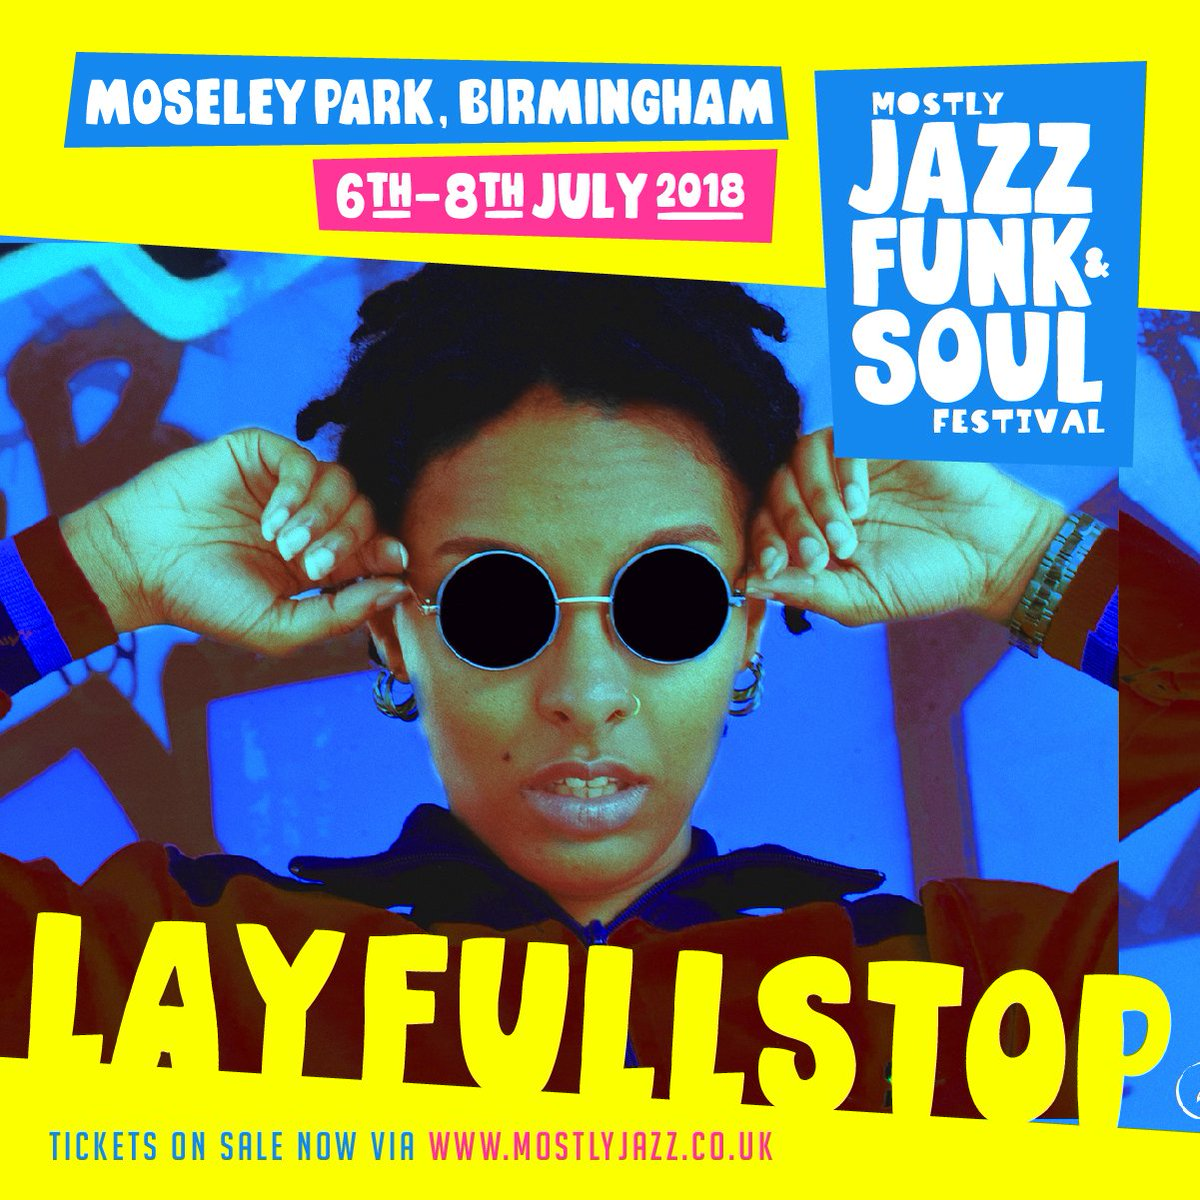 Mostly Jazz Funk & Soul Festival on Twitter: